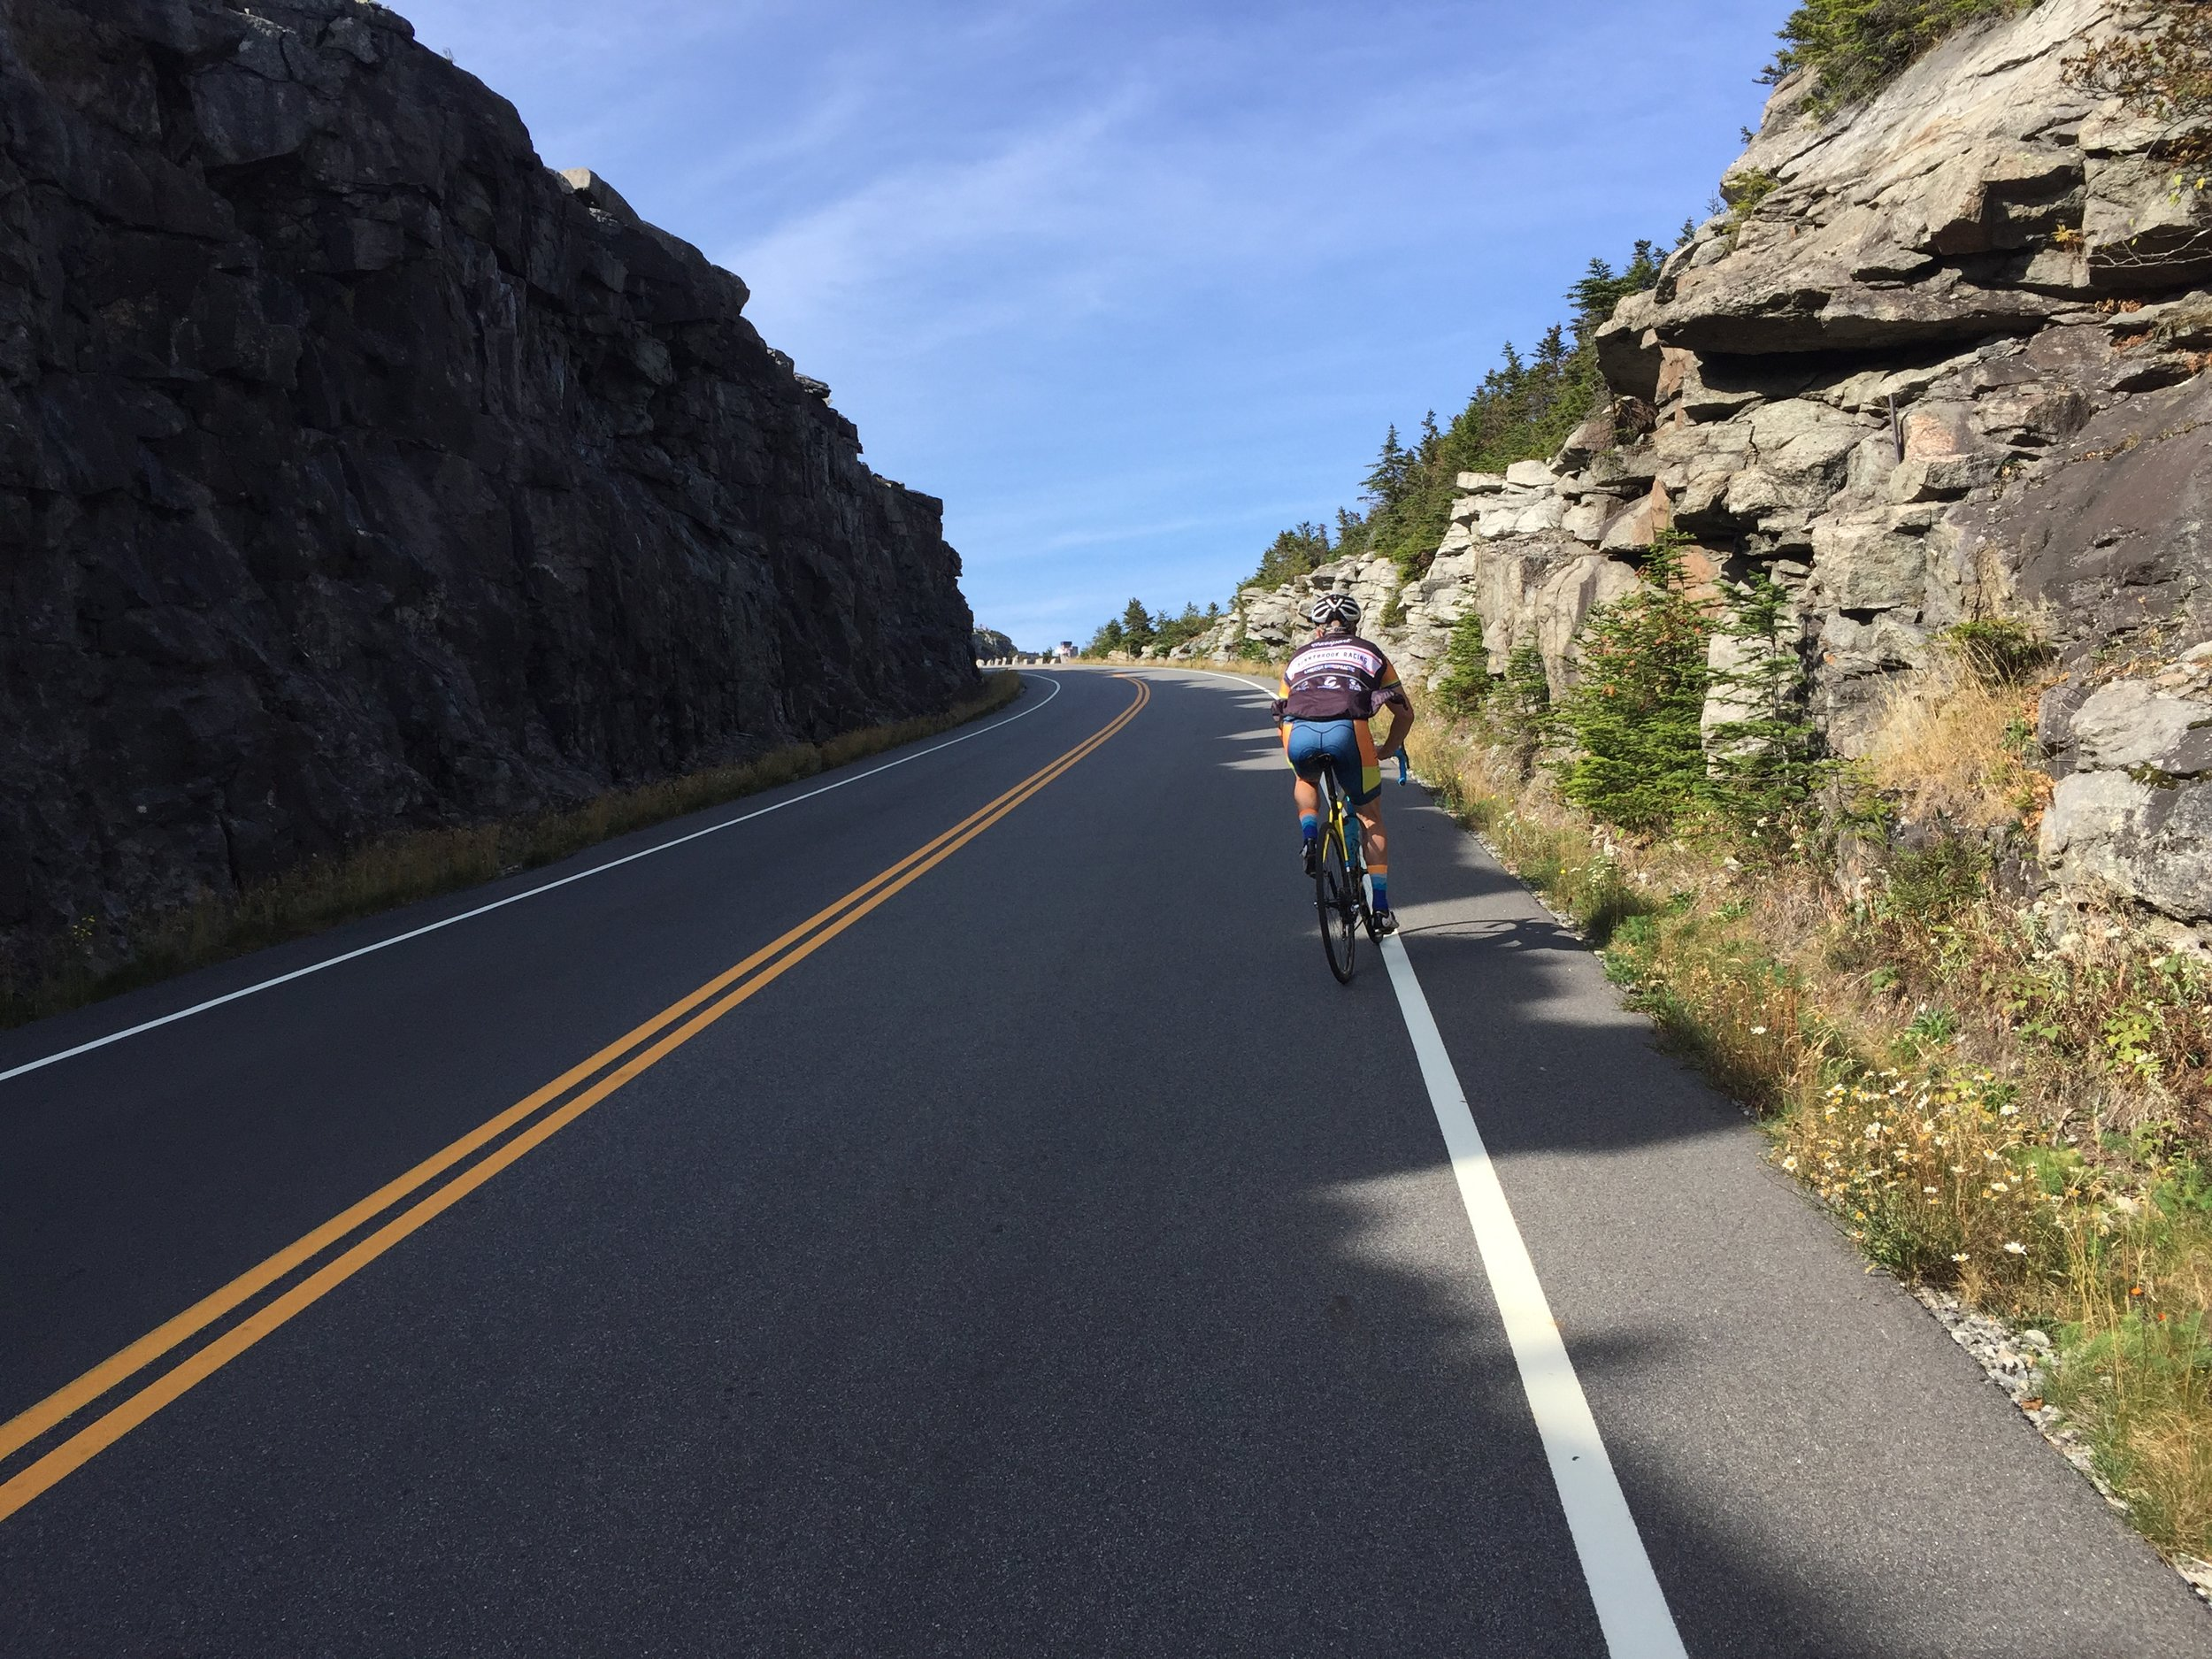 Glenn plodding through the tunnel of granite. The summit of the highway is barely visible off of the left-side wall. Here we picked up a rather favorable tailwind.